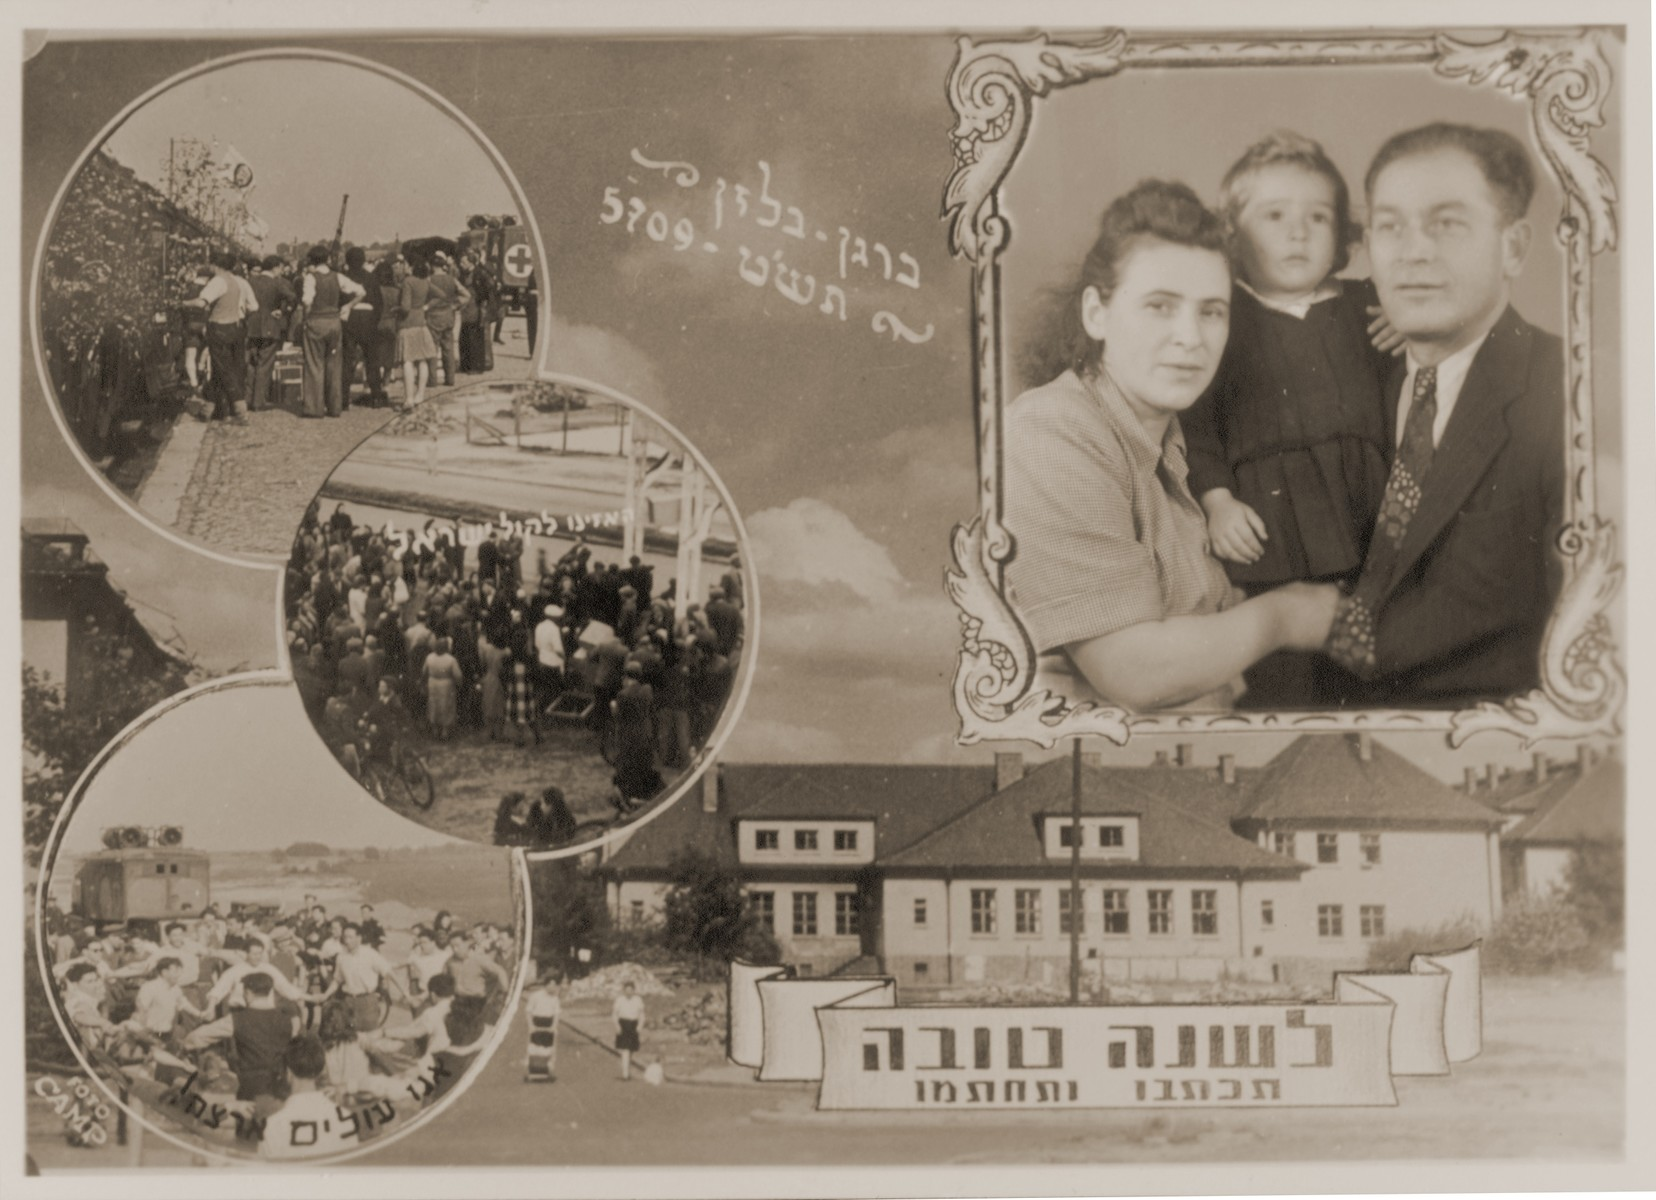 "Personalized Jewish New Year card from the Bergen-Belsen displaced persons camp, featuring a family portrait of Towia and Sara Dziedzic with their daughter, Minia in the upper right.  The Hebrew texts read: ""Bergen-Belsen 5709"" (top), ""Listen to the voice of Israel"" (middle), and ""May you be written and inscribed for a good year"" (bottom right)."